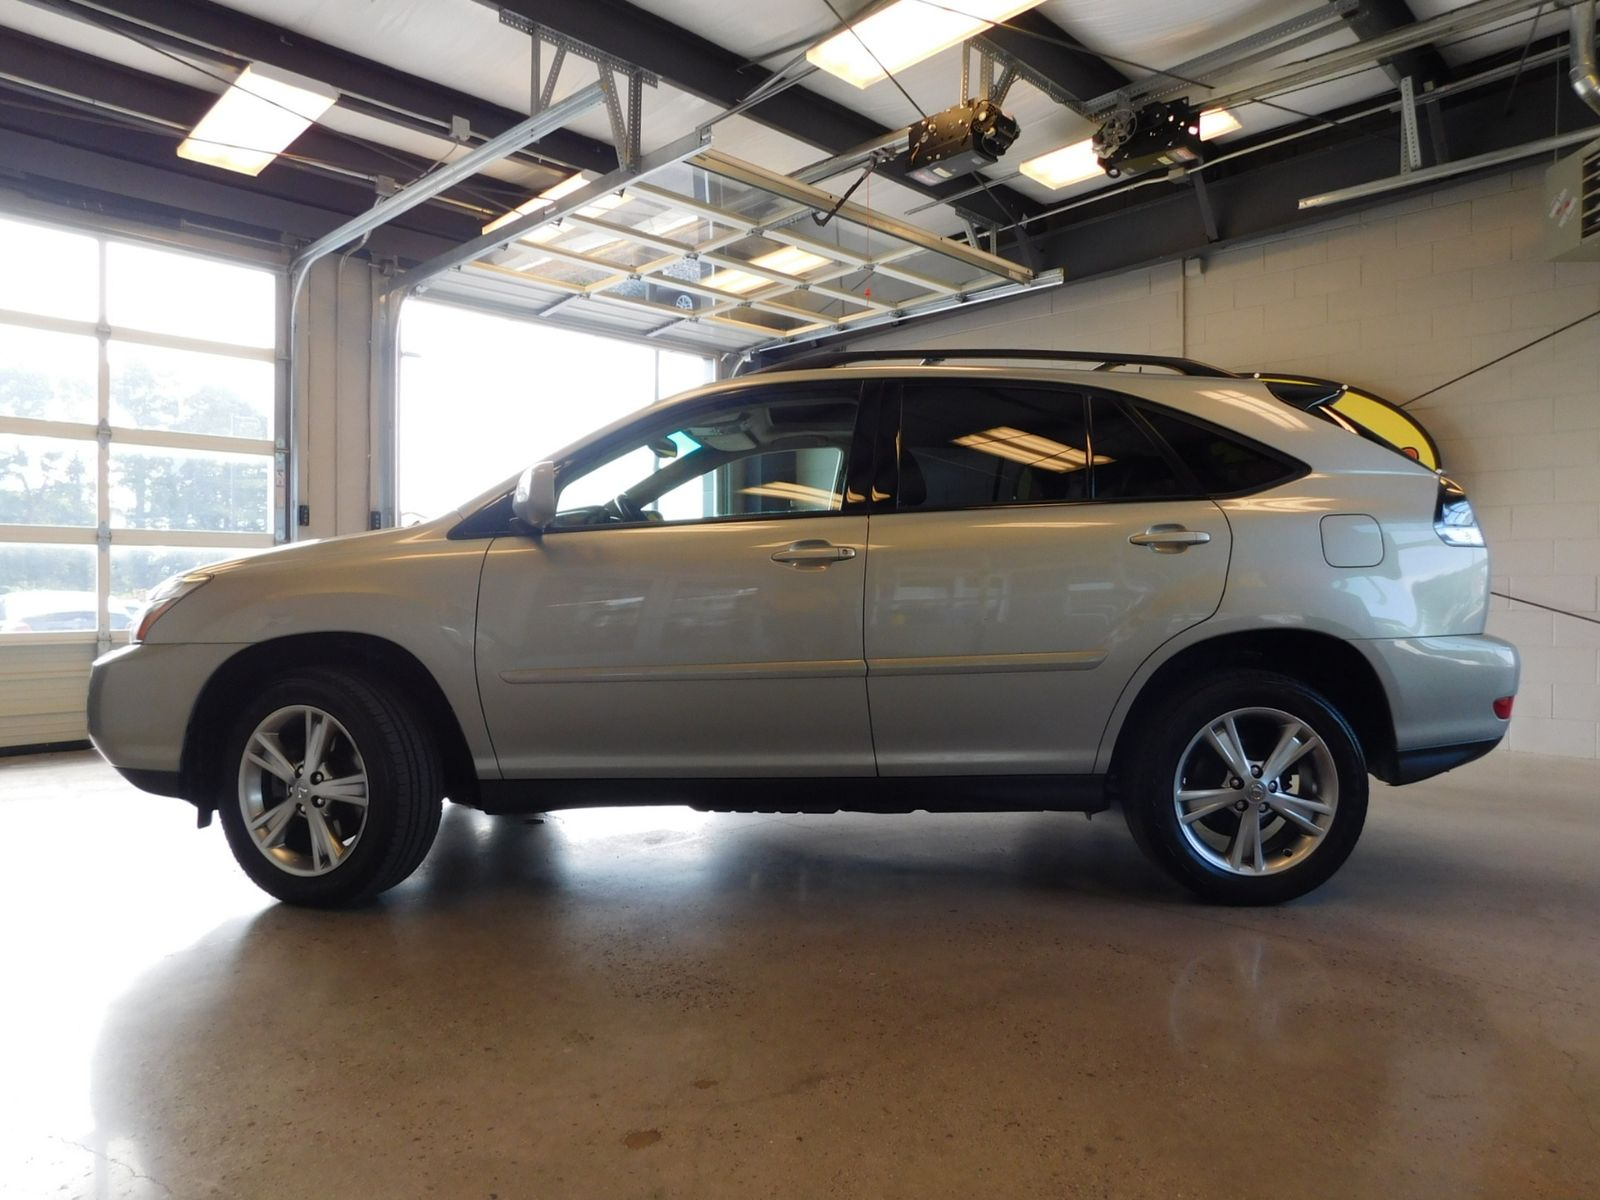 2006 Lexus Rx 400h Hybrid City Tn Doug Justus Auto Center Inc Trailer Hitch Wiring Harness For 350 In Airport Motor Mile